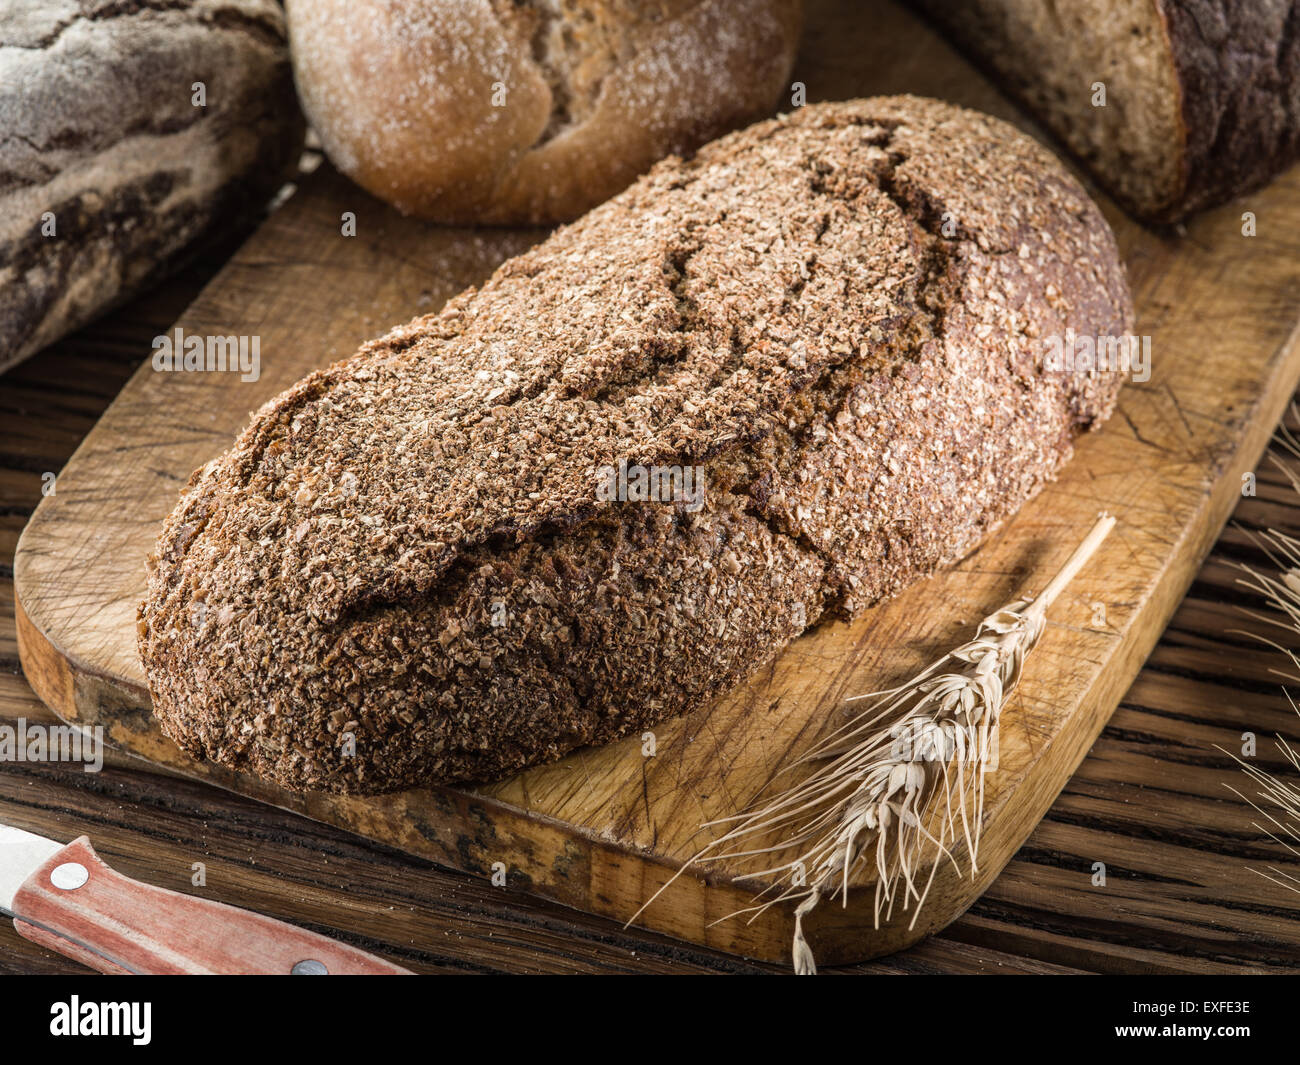 Rye-bread loaf on the wooden plank. - Stock Image